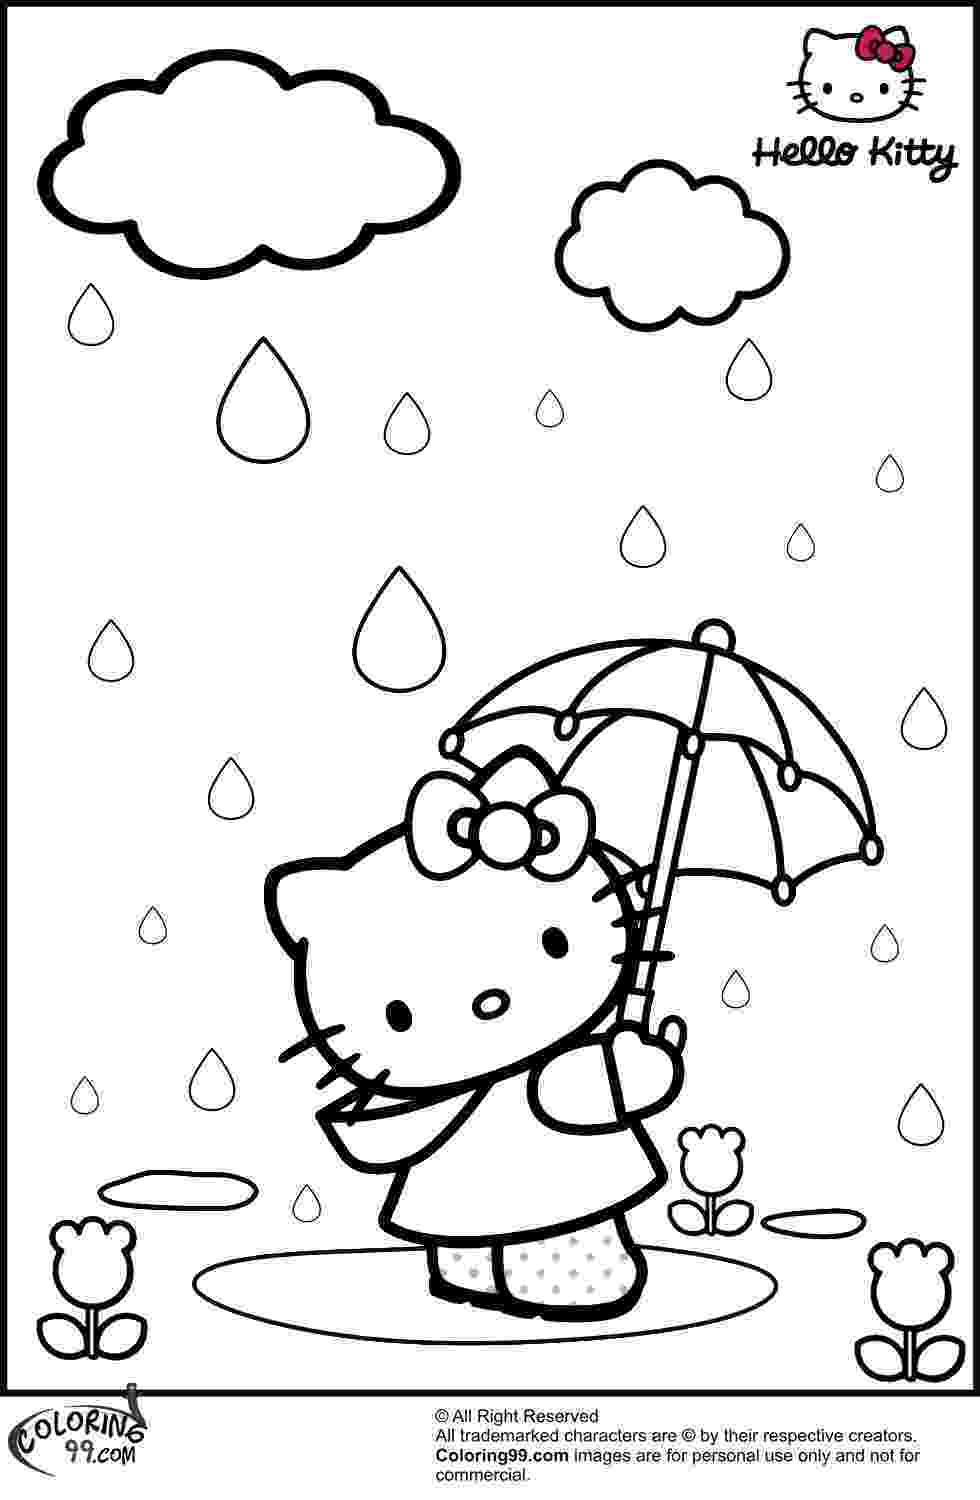 kitty hello coloring pages free printable hello kitty coloring pages for pages coloring pages hello kitty